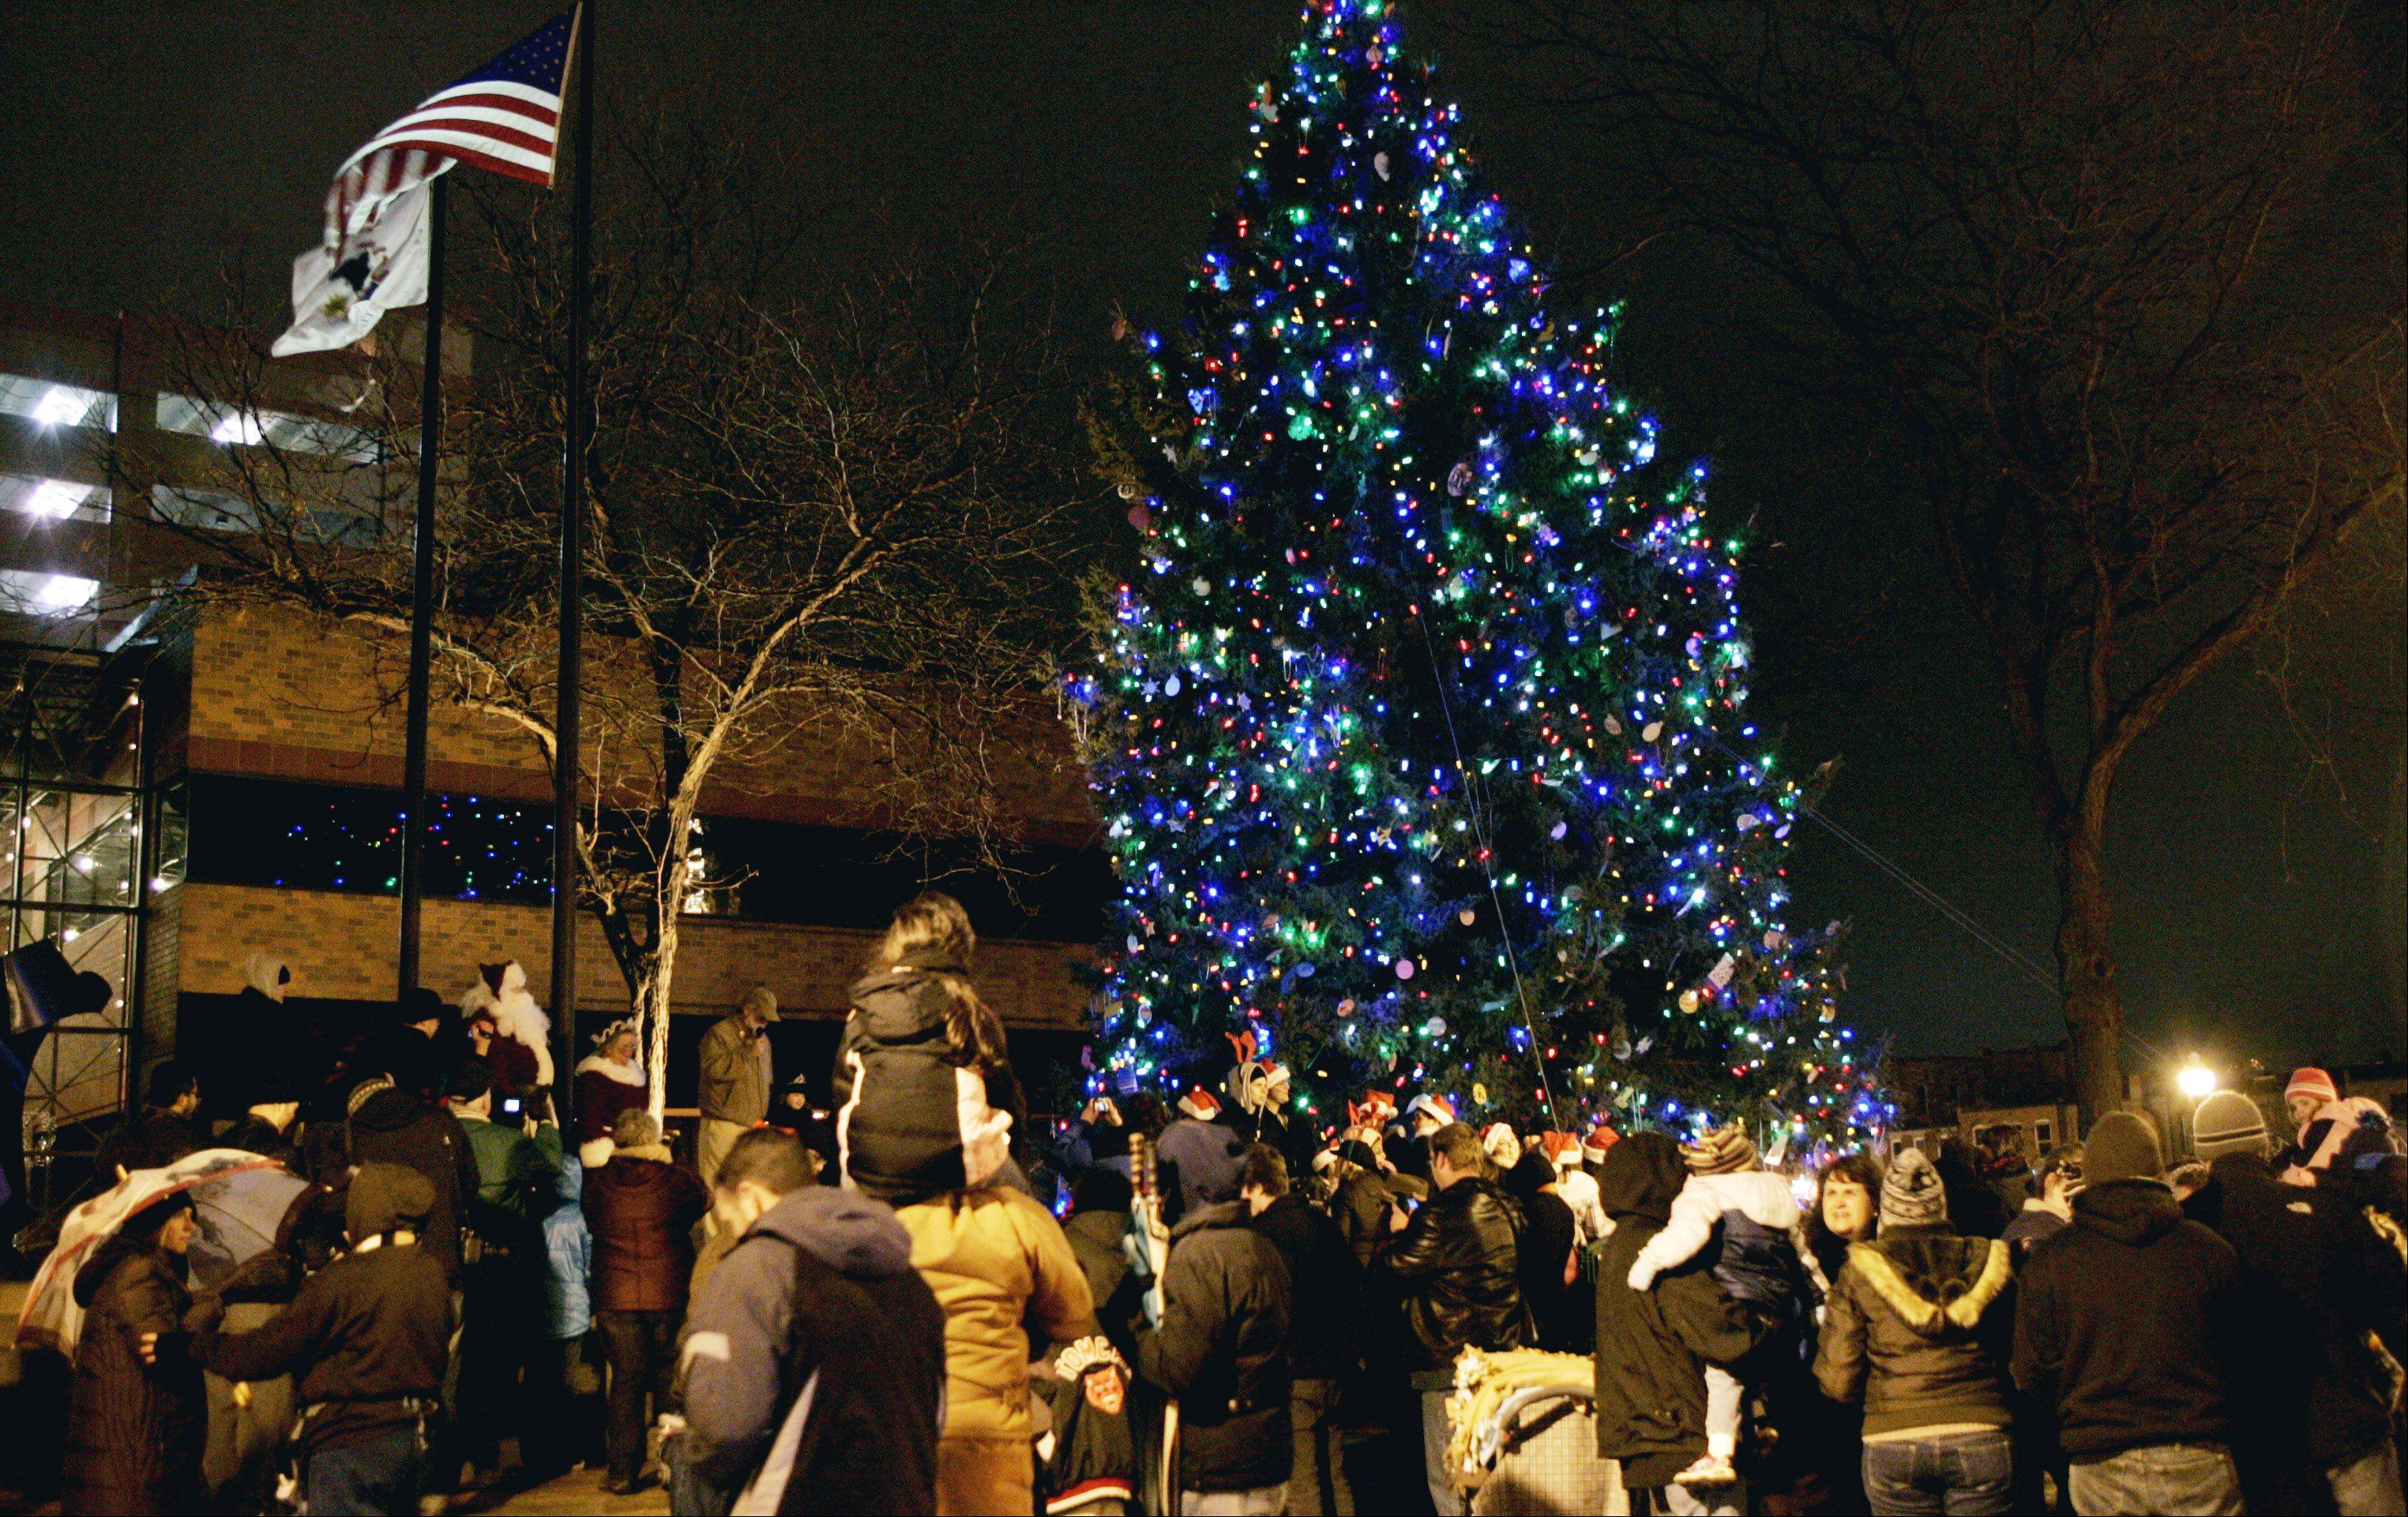 Aurora is expanding its holiday tree-lighting event this year into the Winter Lights holiday walk featuring ice sculptures, art for sale, carols, hot cocoa and decorated windows.